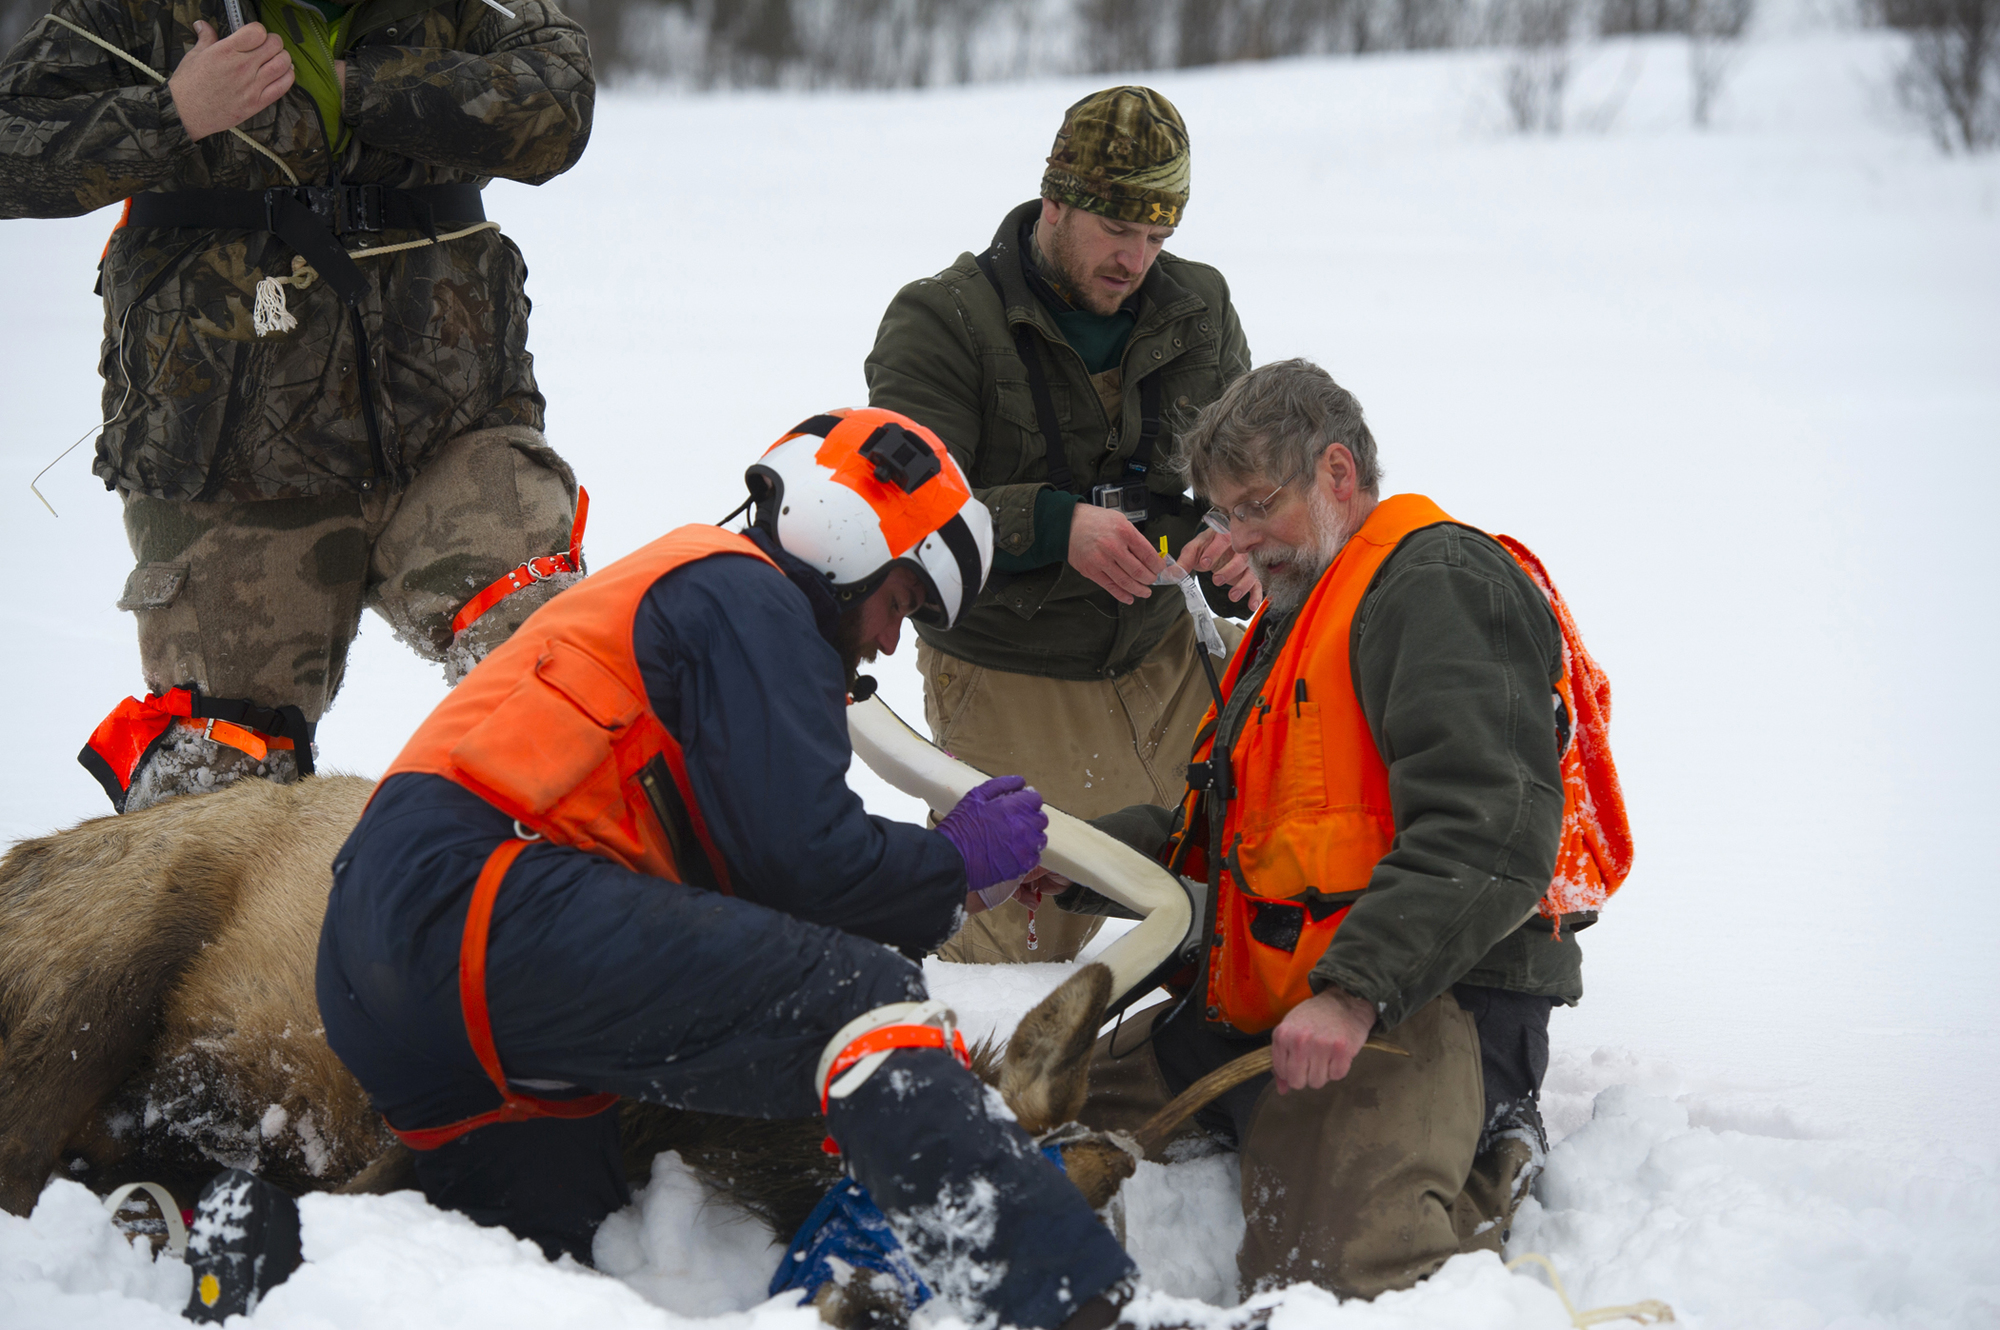 Researchers are grouped around an elk that is lying in the snow. They work to fit the animal with a GPS collar before release.